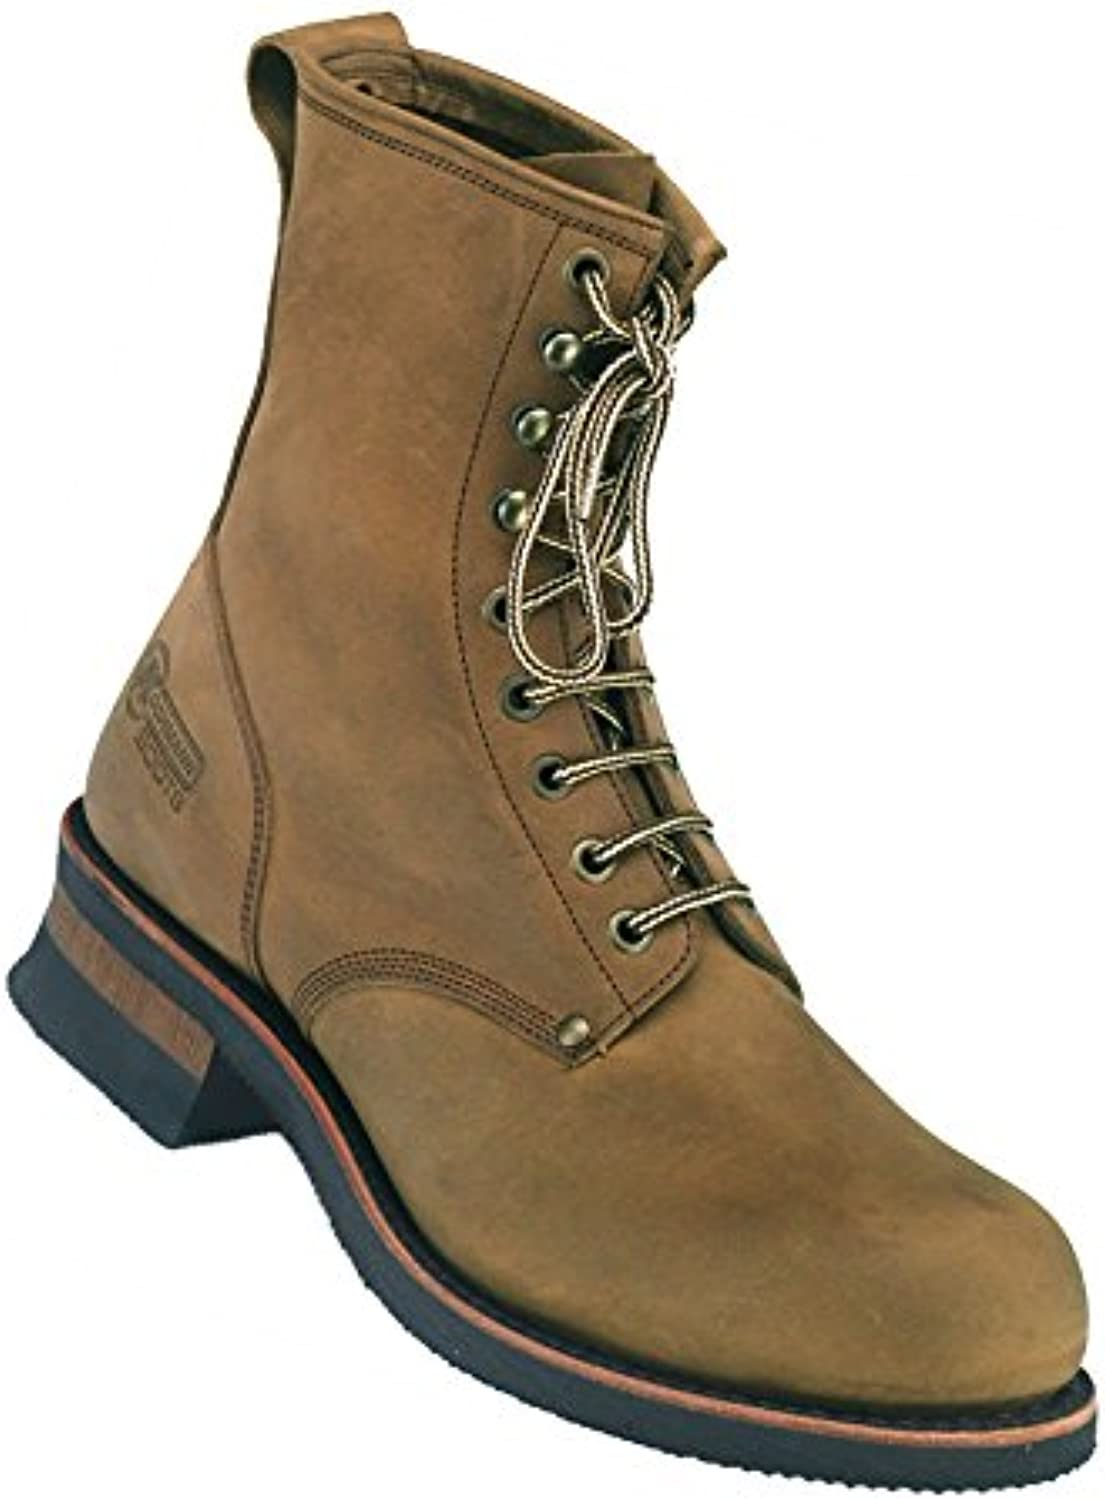 Kochmann Worker Outdoor de cordones, color marrón Talla:44 EU  -